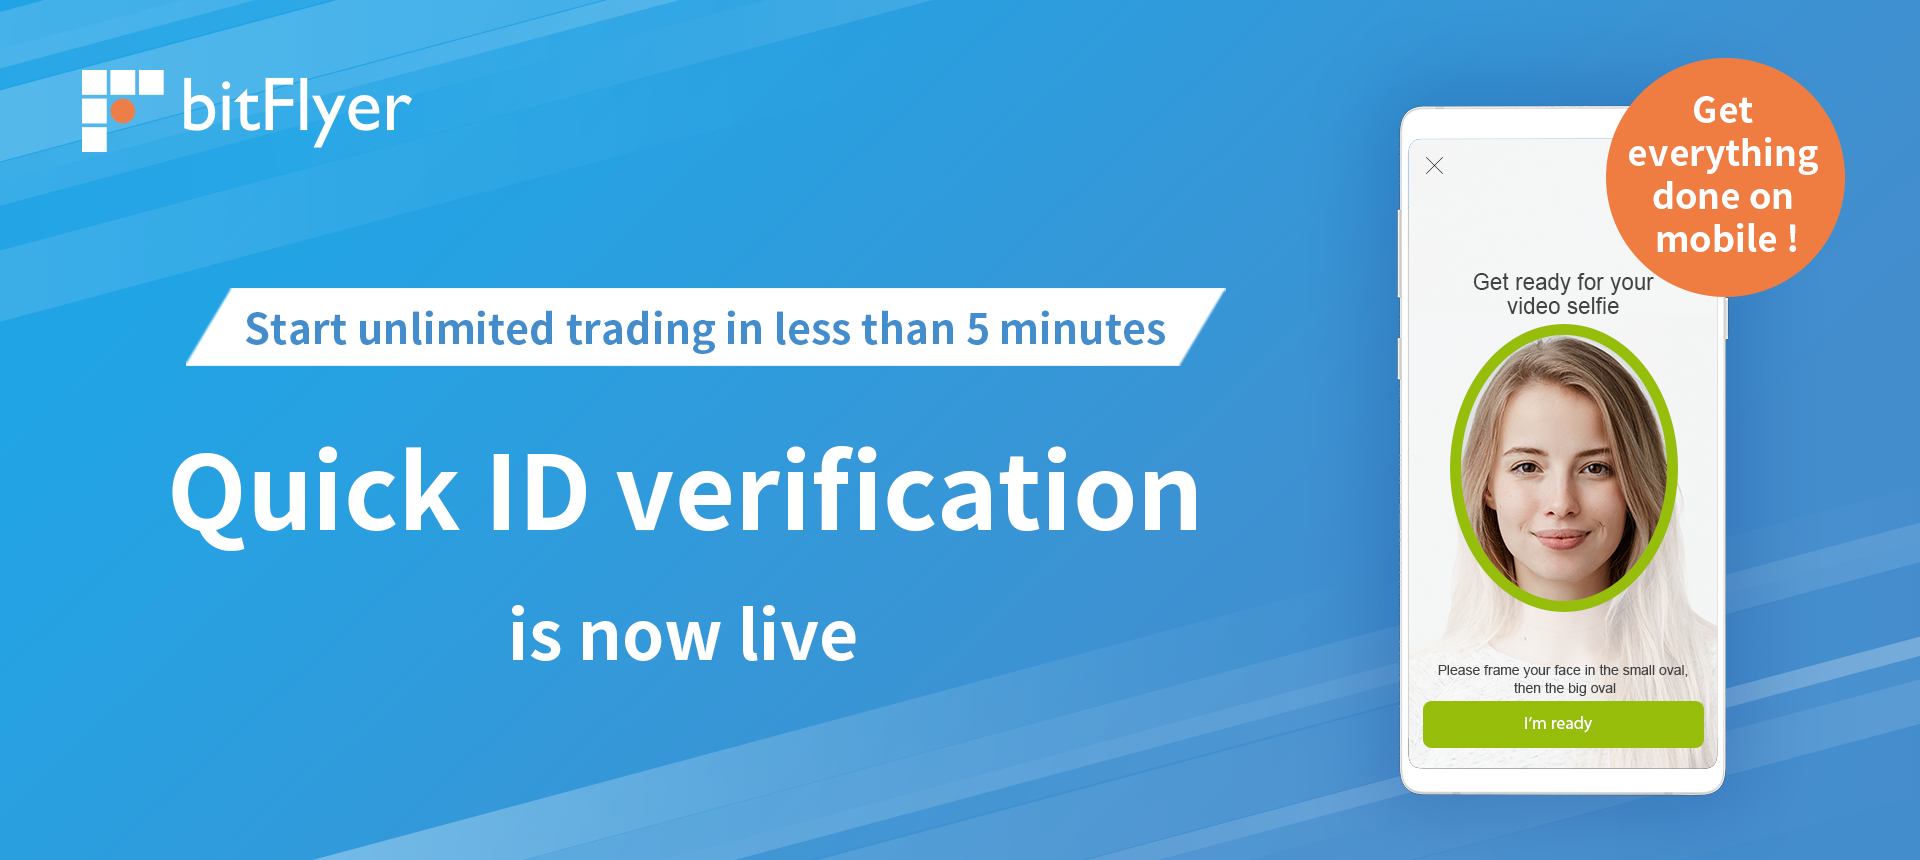 """Start trading immediately with """"Quick ID verification"""""""